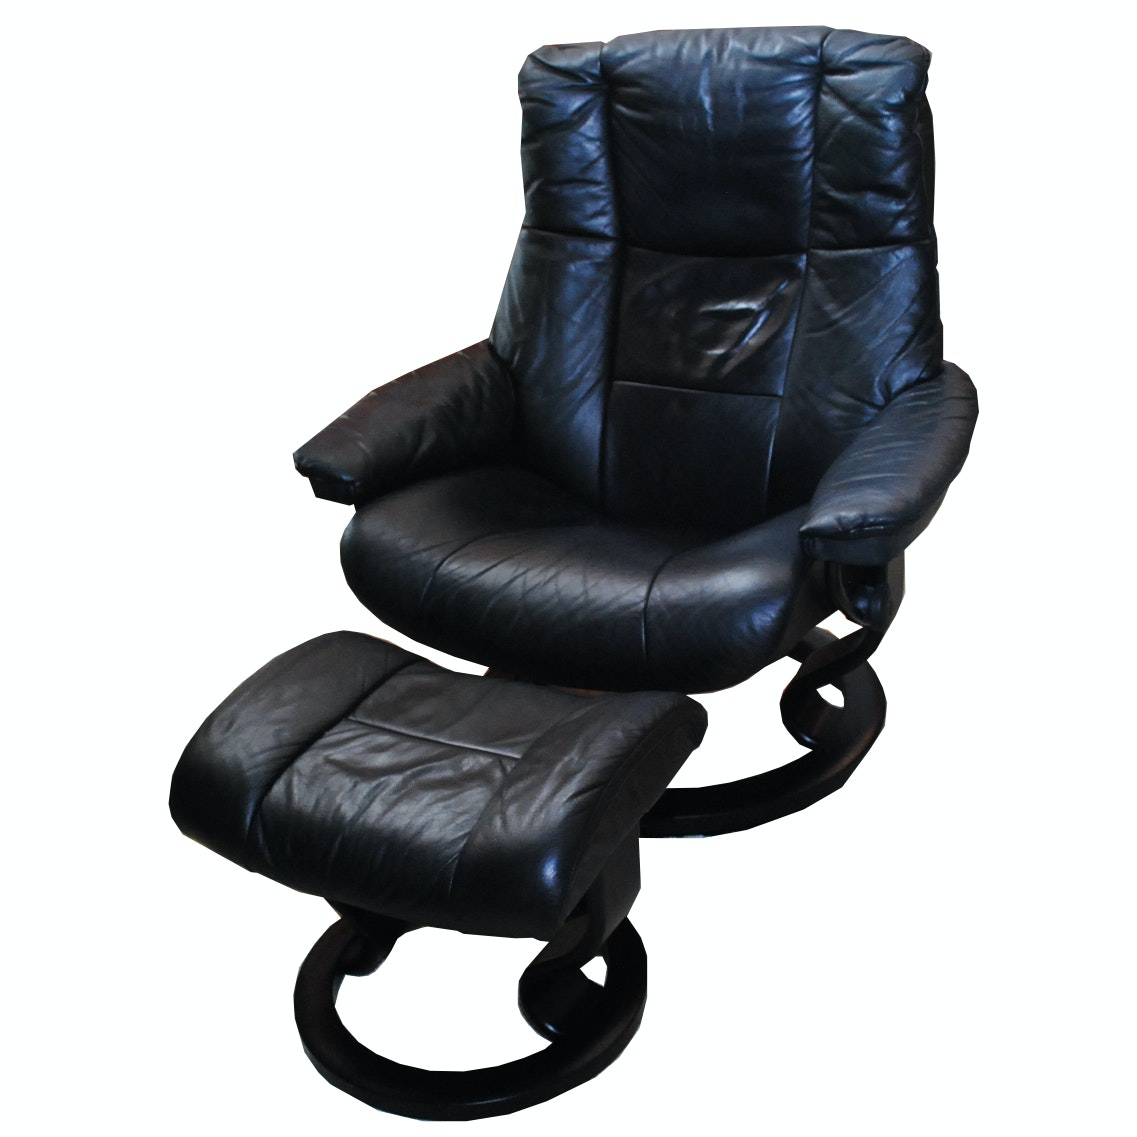 Black Leather Stationary Recliner with Ottoman